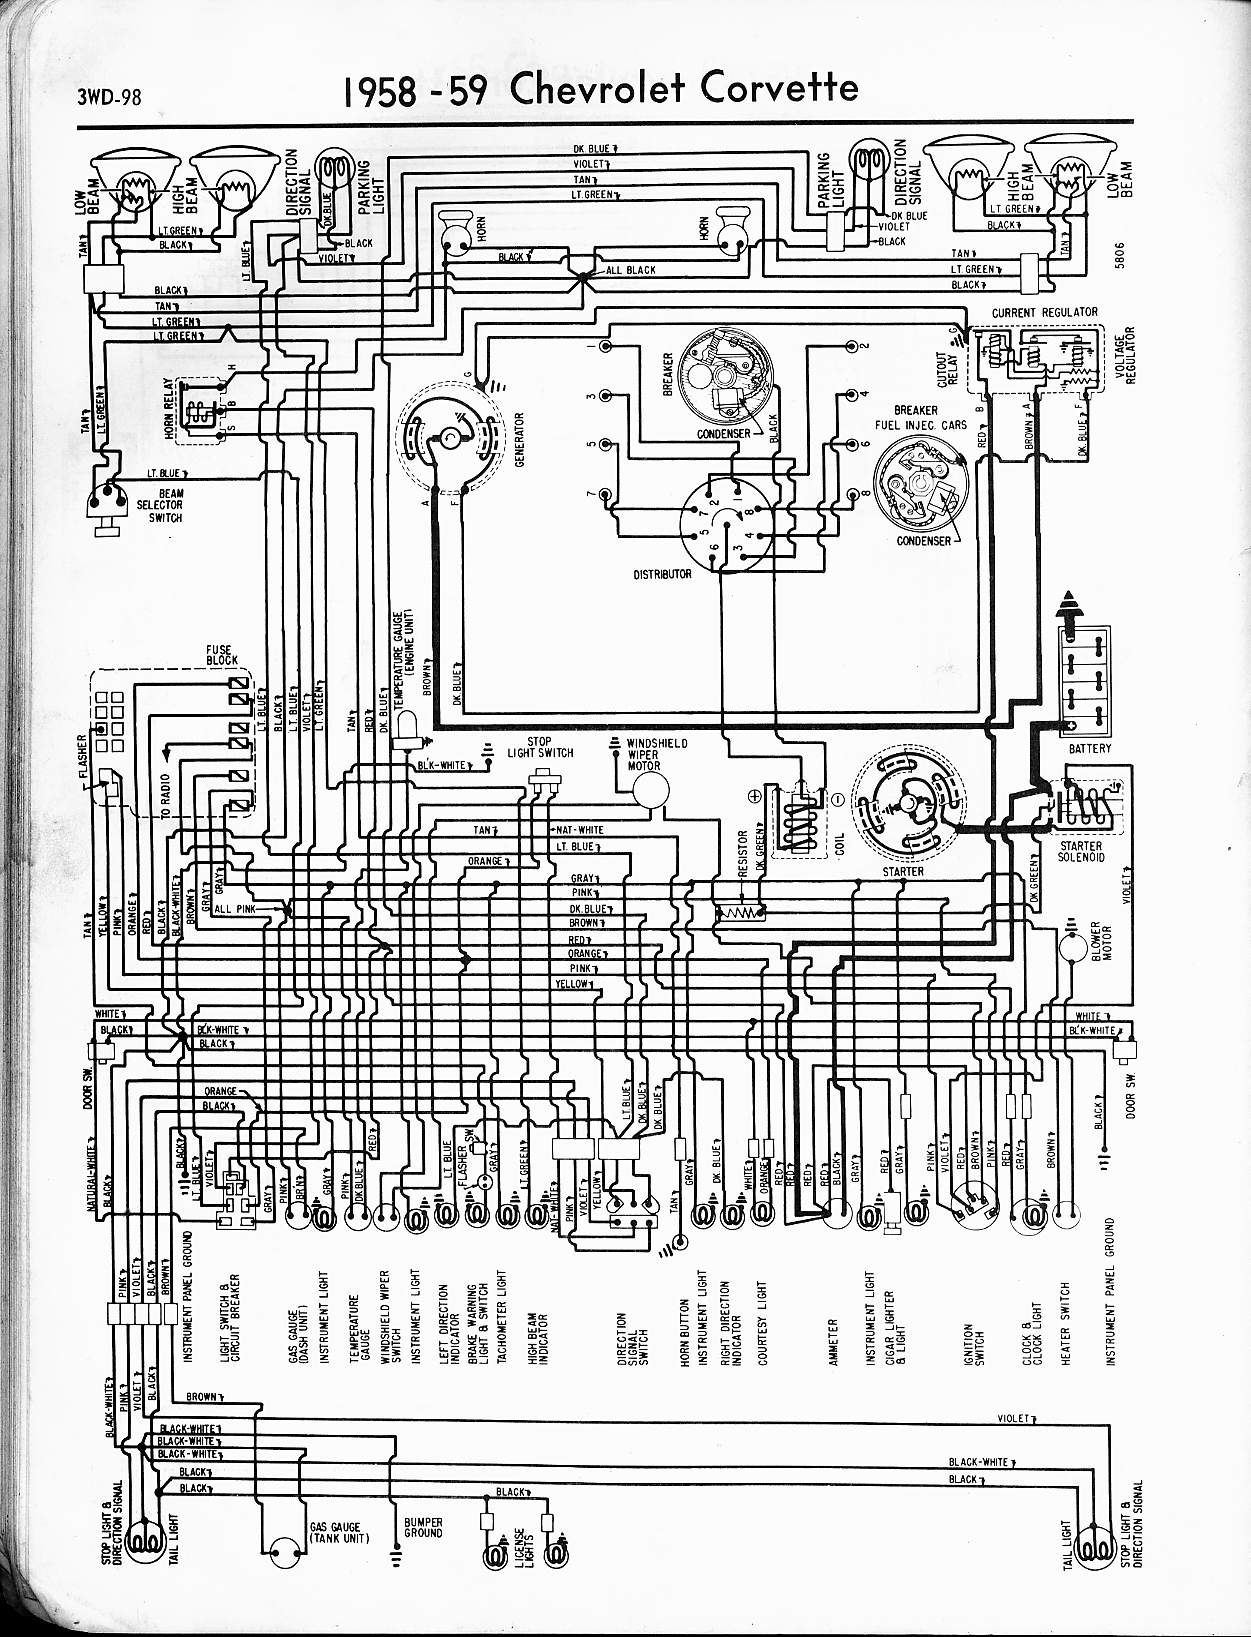 1960 Impala Horn Diagram Wiring Schematic Free For Chevy Silverado Door 1965 Ignition Detailed Rh 7 9 3 Gastspiel Gerhartz De 1959